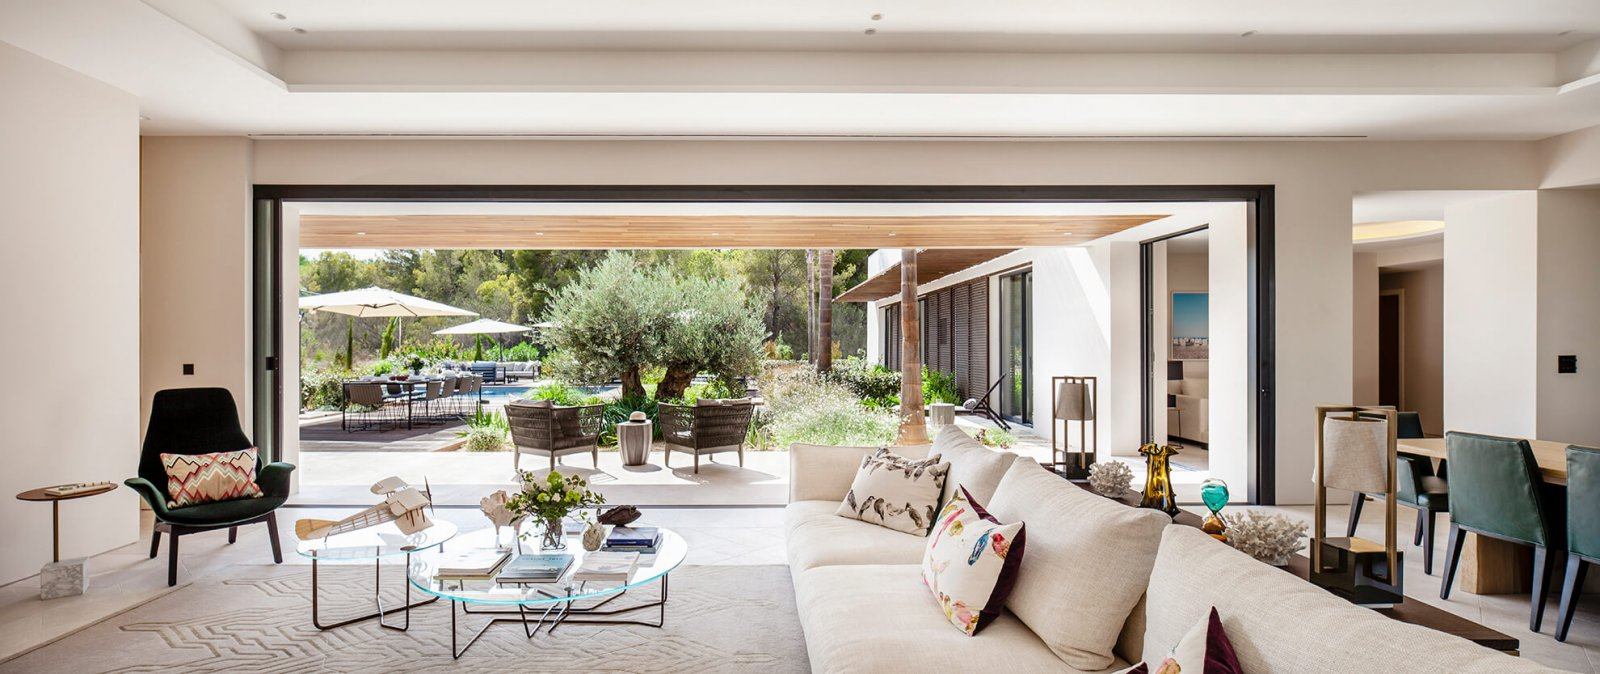 Another view of the living room joined through a large open sliding glass door to the chill-out, garden, and swimming pool, surrounded by trees of the Sol de Mallorca house